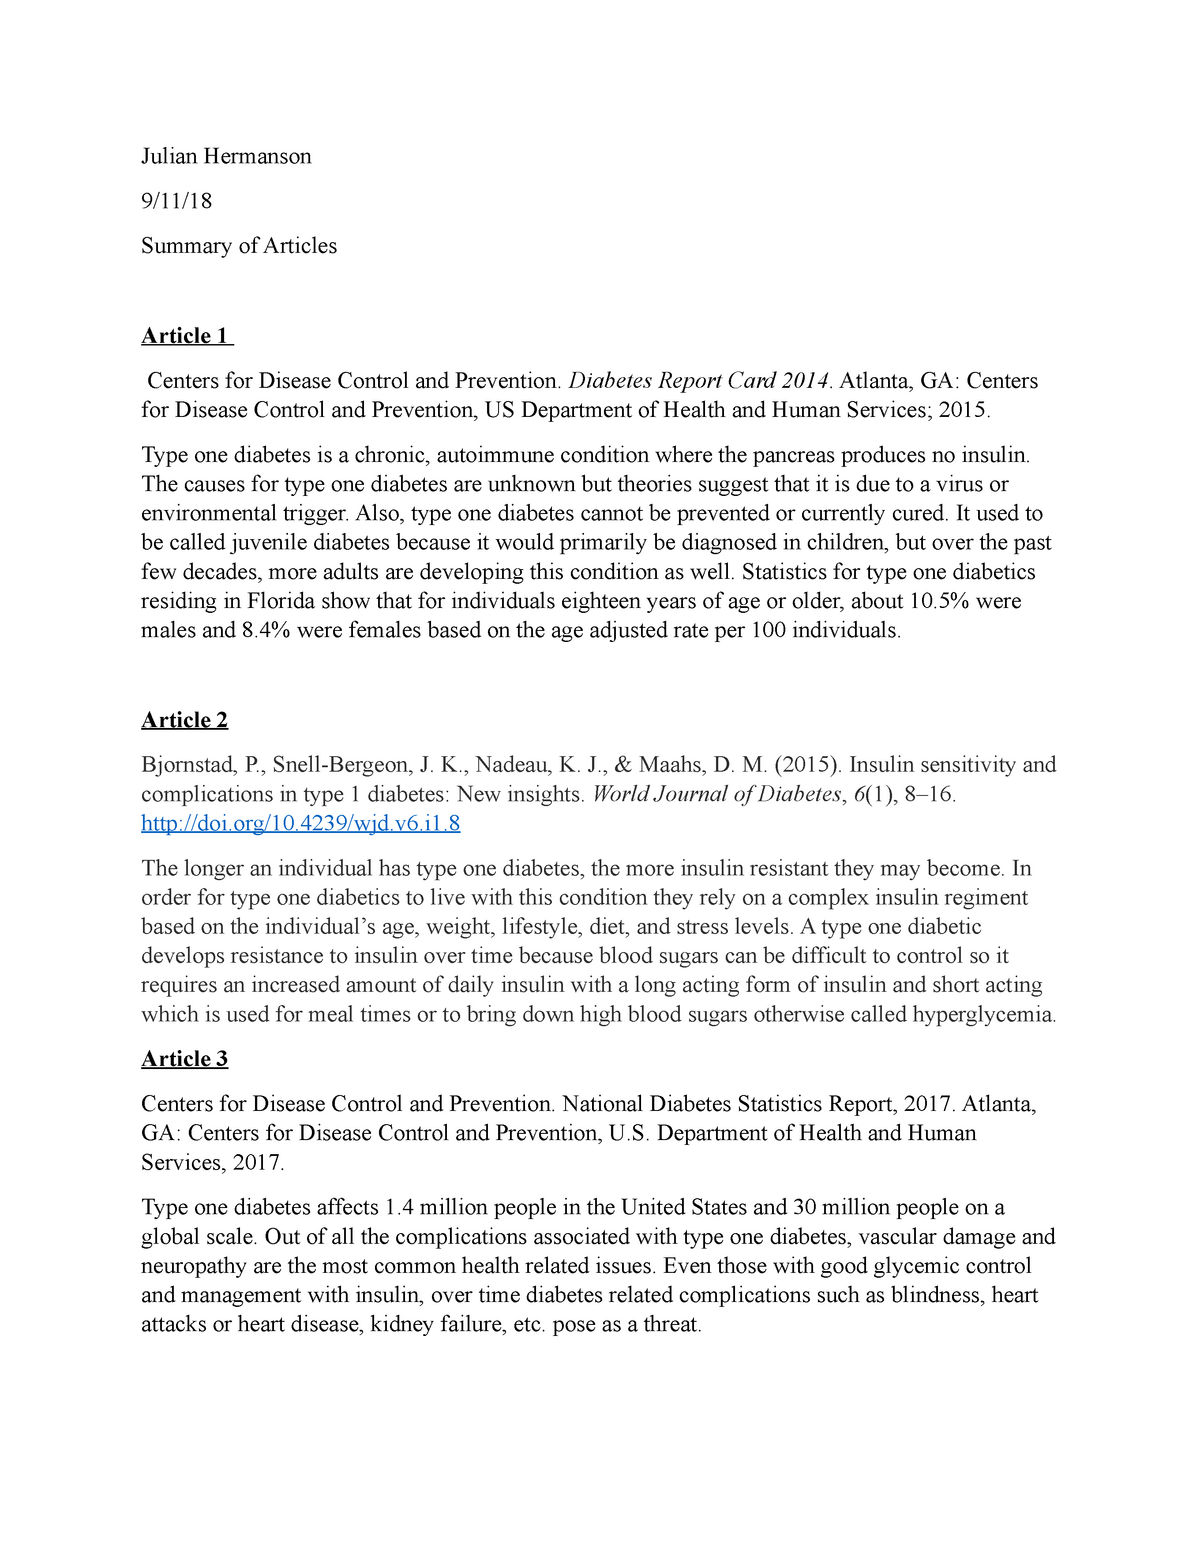 Foundation of Public Health writing - 6 peered reviewed